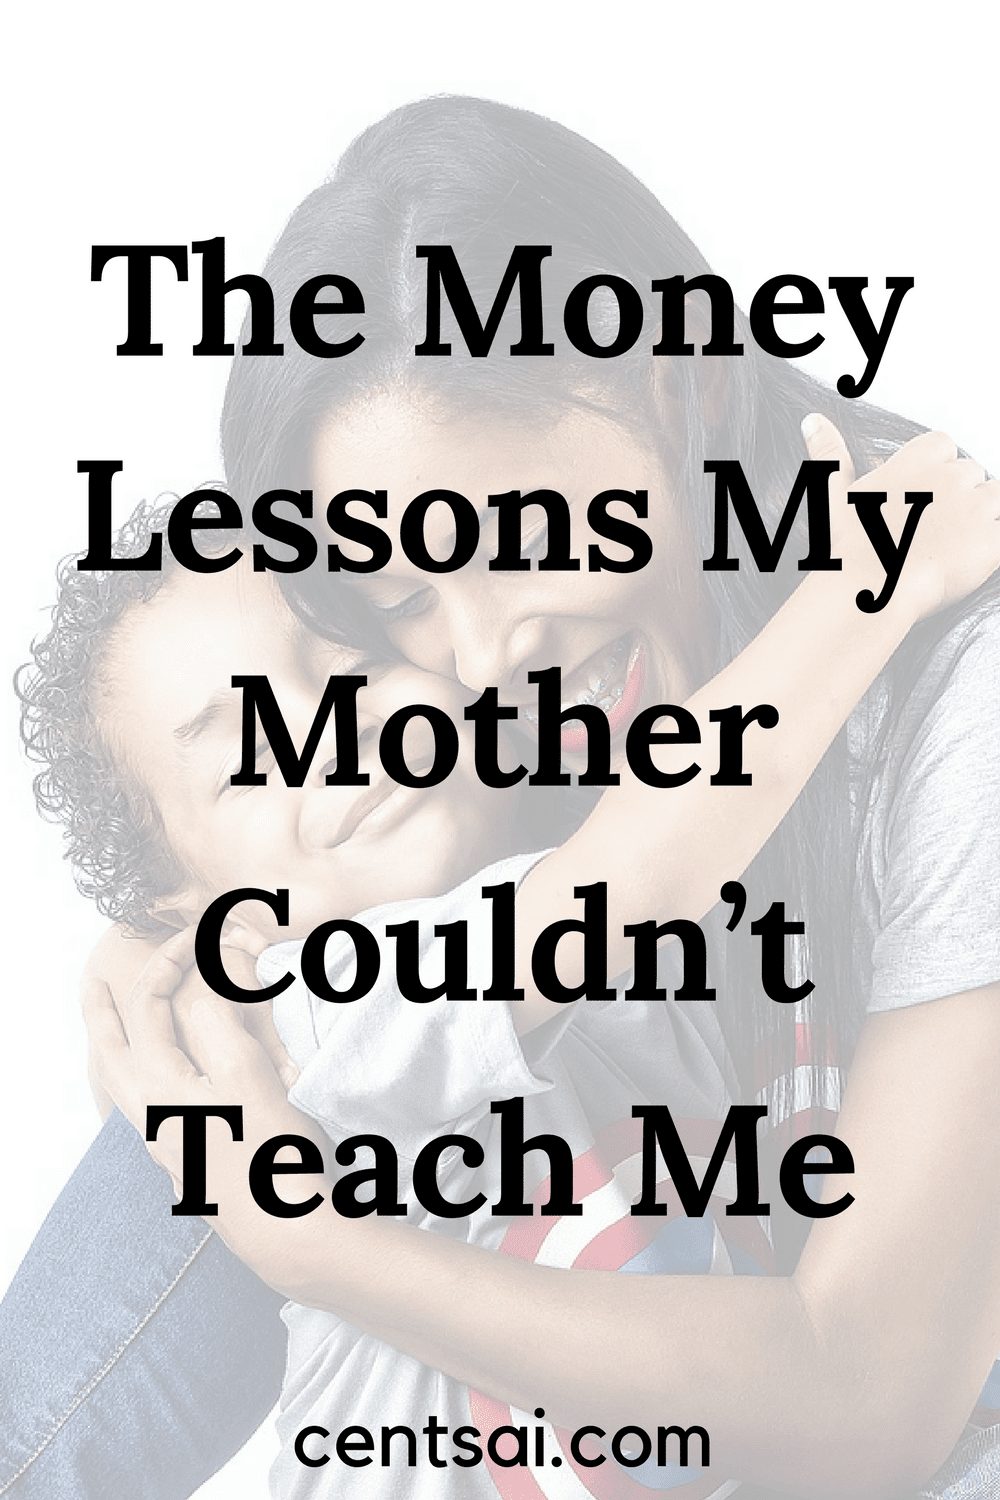 The Money Lessons My Mother Couldn't Teach Me. Our money attitude is shaped by our childhood experiences, and family plays a big part in it by giving us money lessons.